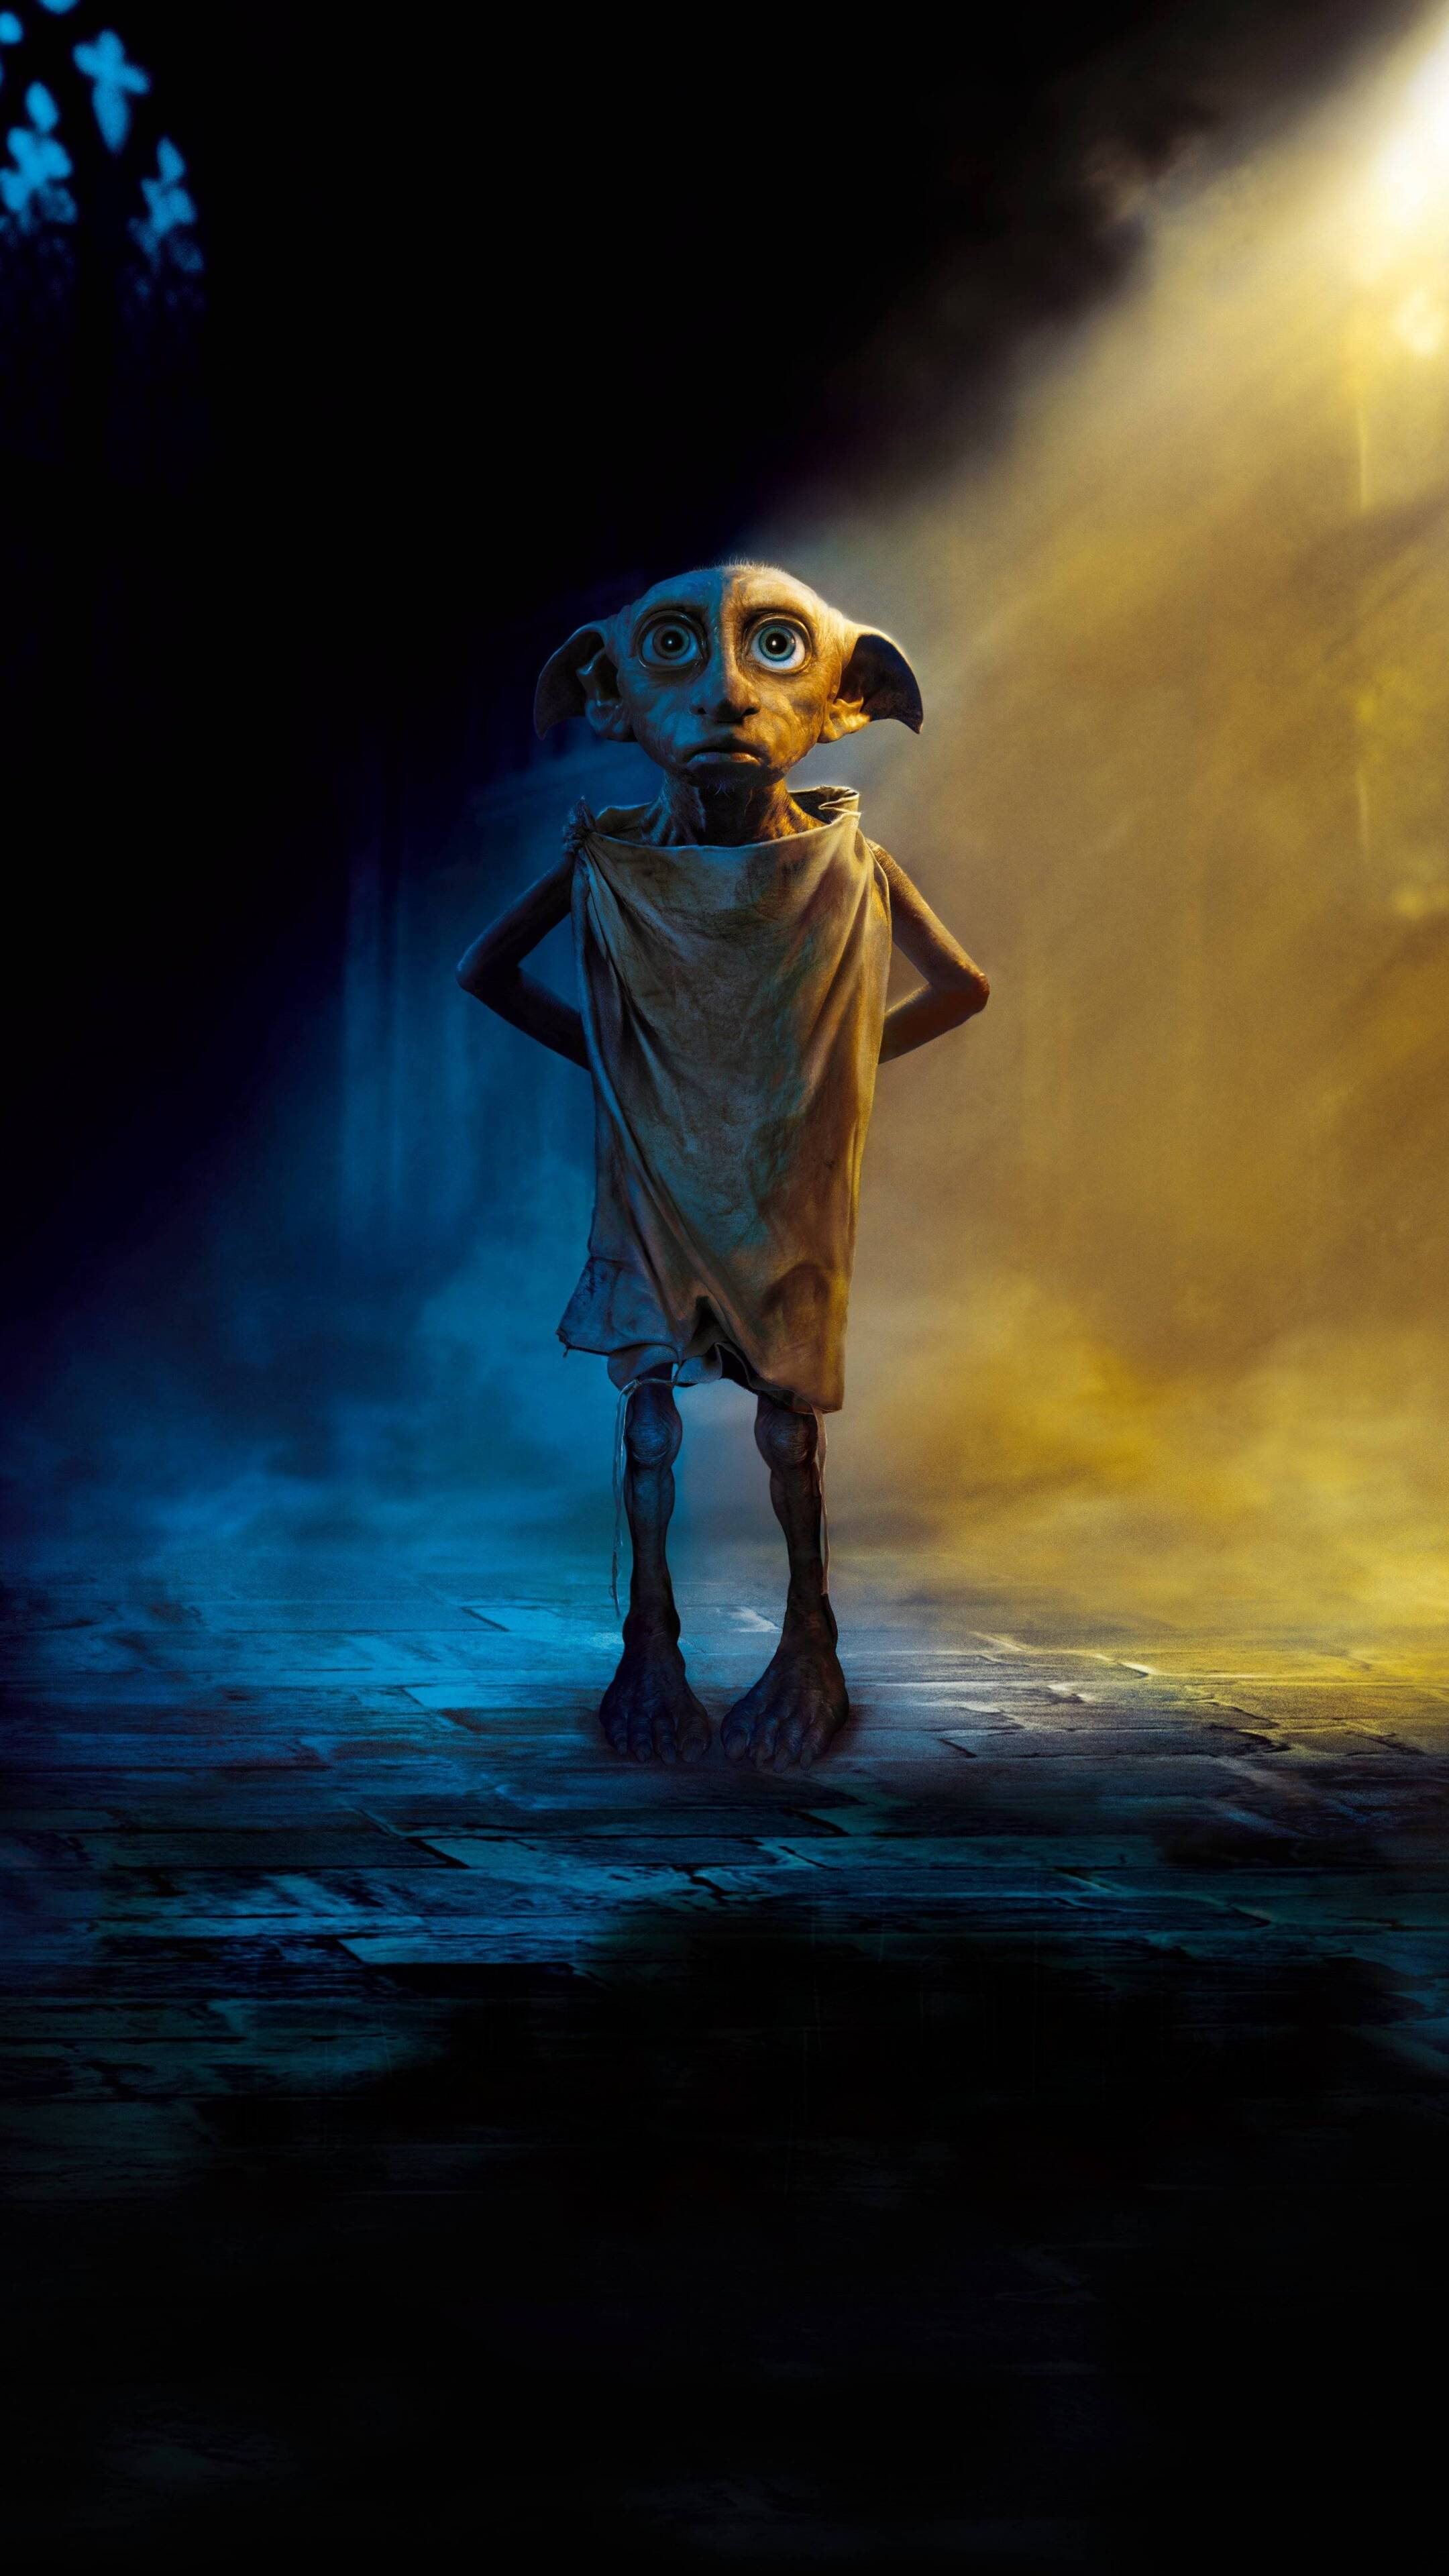 Amazing Wallpaper Harry Potter Android Phone - dobby-the-house-elf-harry-potter-a9-2160x3840  You Should Have_873846.jpg